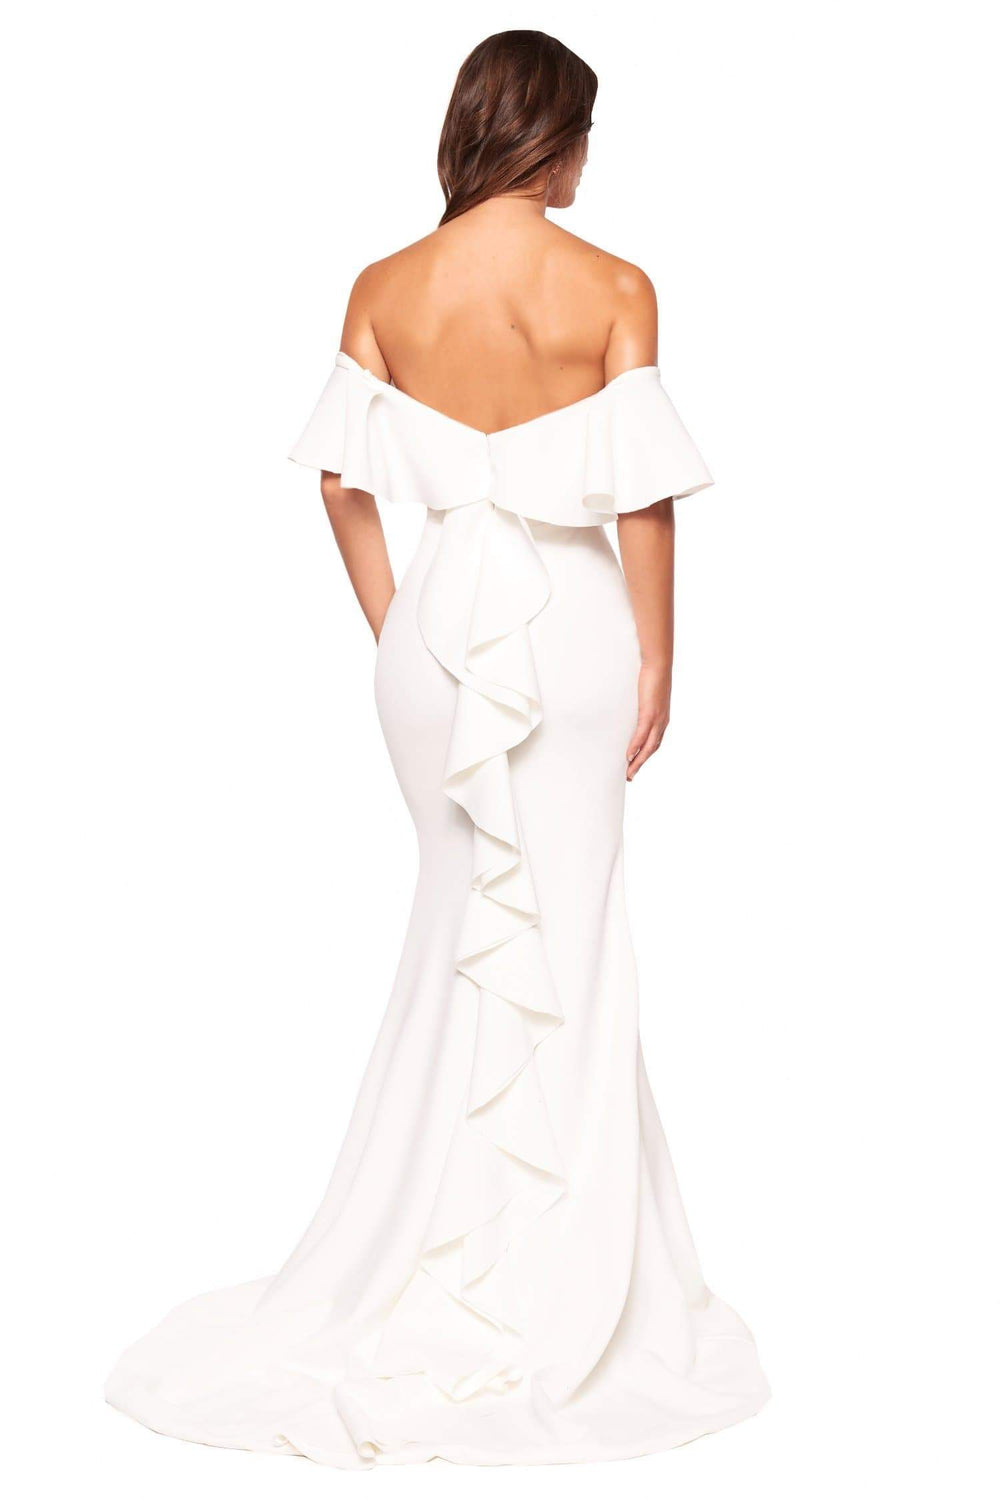 A&N Luxe Evie - White Off-Shoulder Ponti Gown with Frill Detail